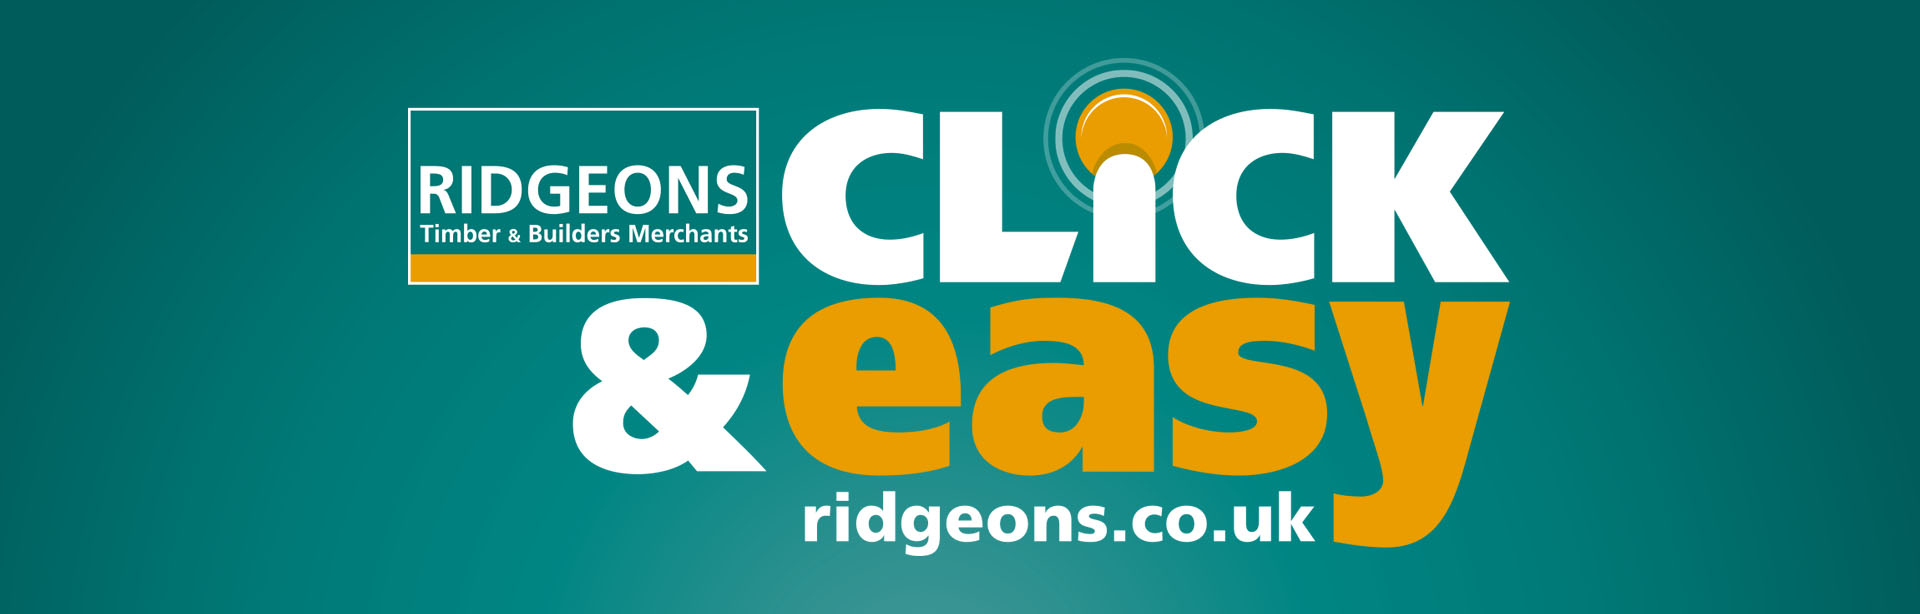 Click & Easy branding for eCommerce launch marketing campaign for Ridgeons